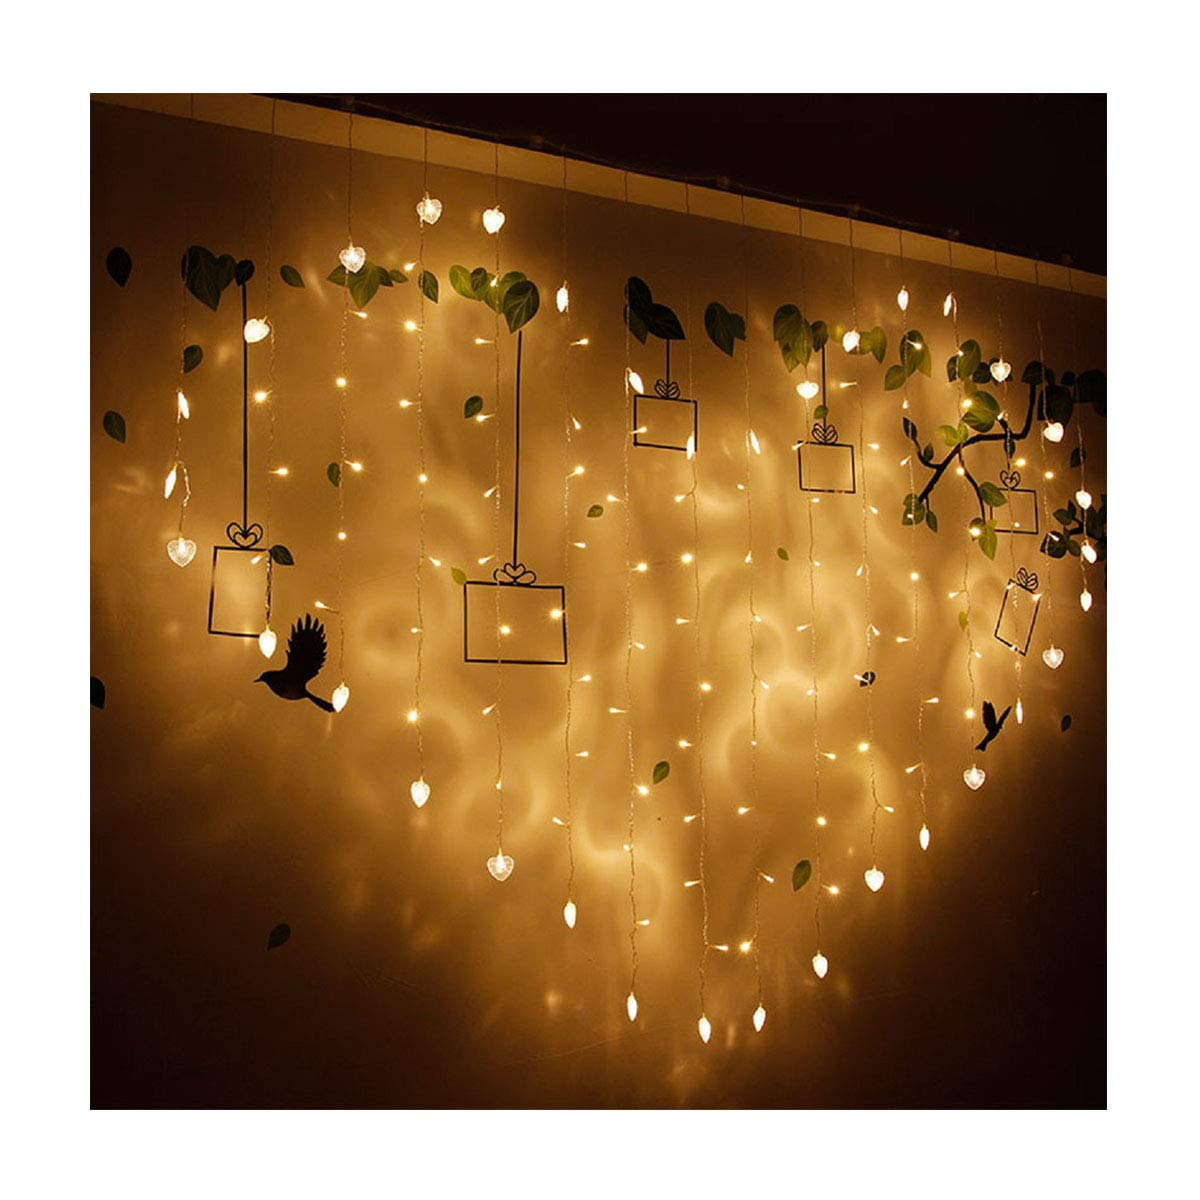 LED Window Curtain String Lights with UL Listed, Landscape Lights for Wedding Party and Bedroom, Waterproof and Antifreezing Outdoor Indoor Decorations Wall Lights (Heart-Shaped)